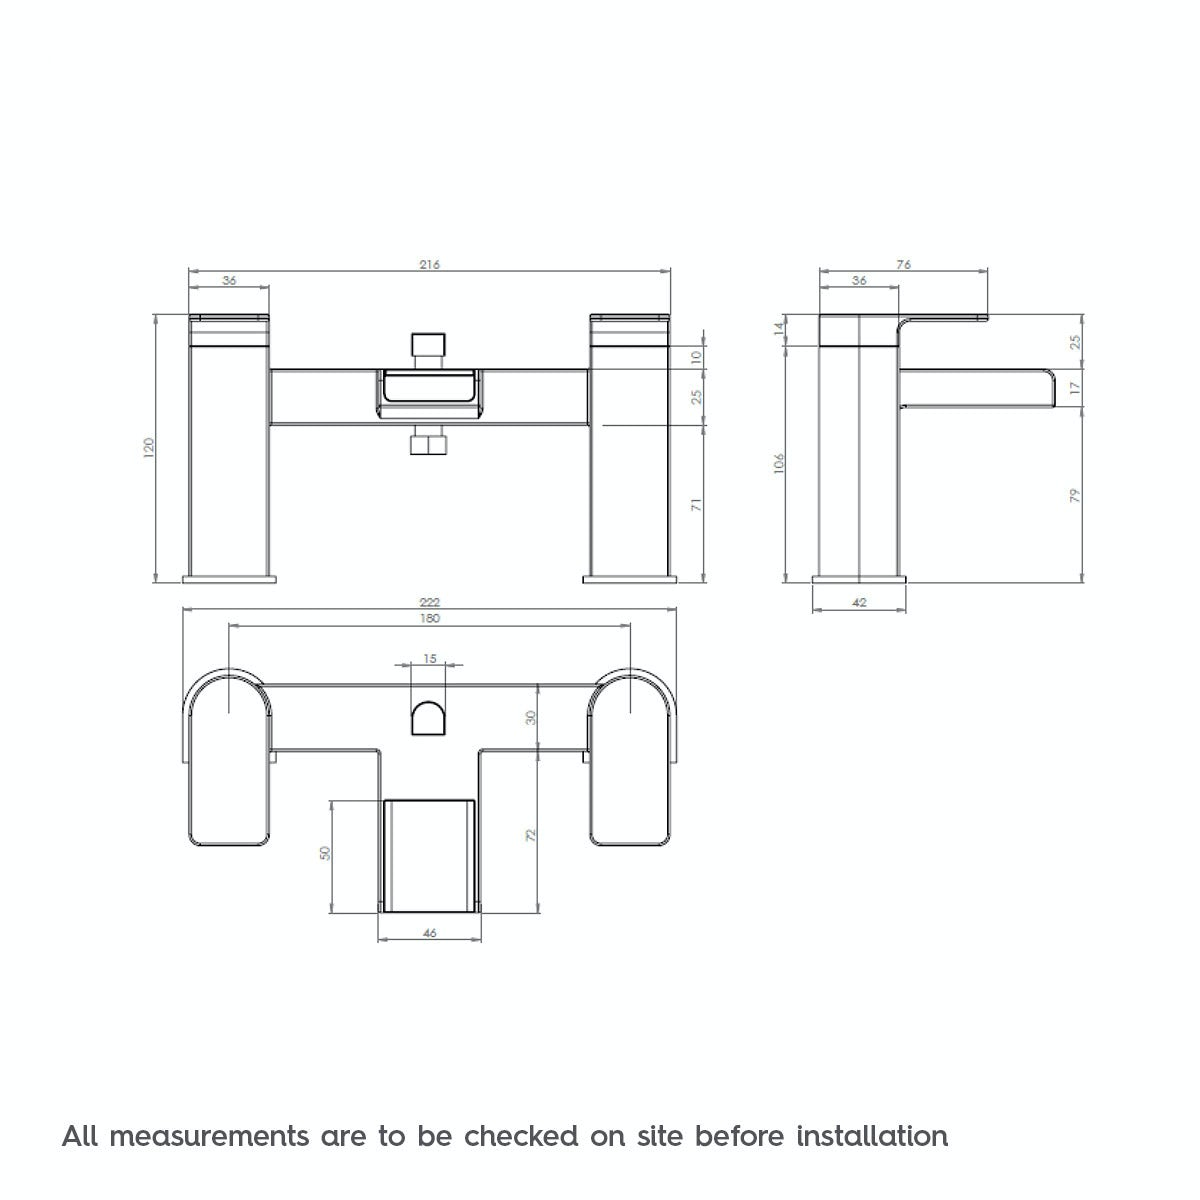 Dimensions for Mode Cooper bath shower mixer tap